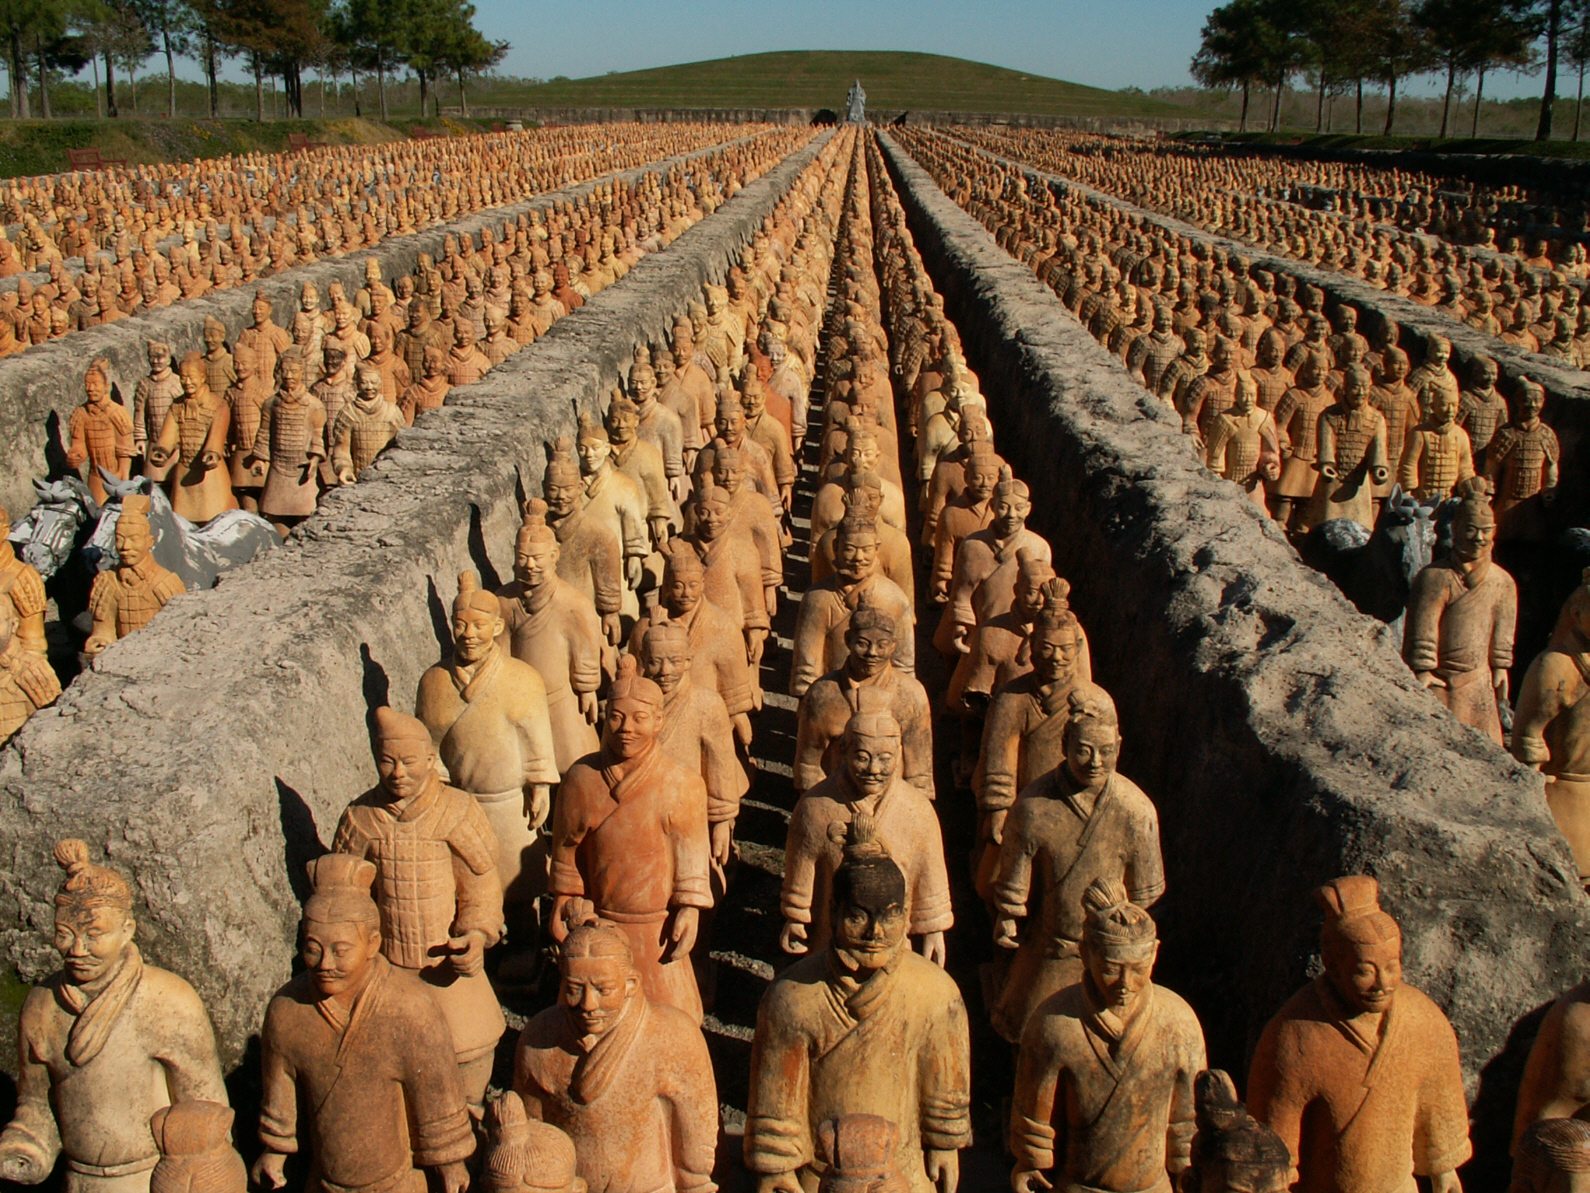 terra cotta soldiers of the qin The first excavation of the site lasted six years betweeen 1978 and 1984, during which some 1,087 clay soldiers were discovered  china's qin terracotta army.